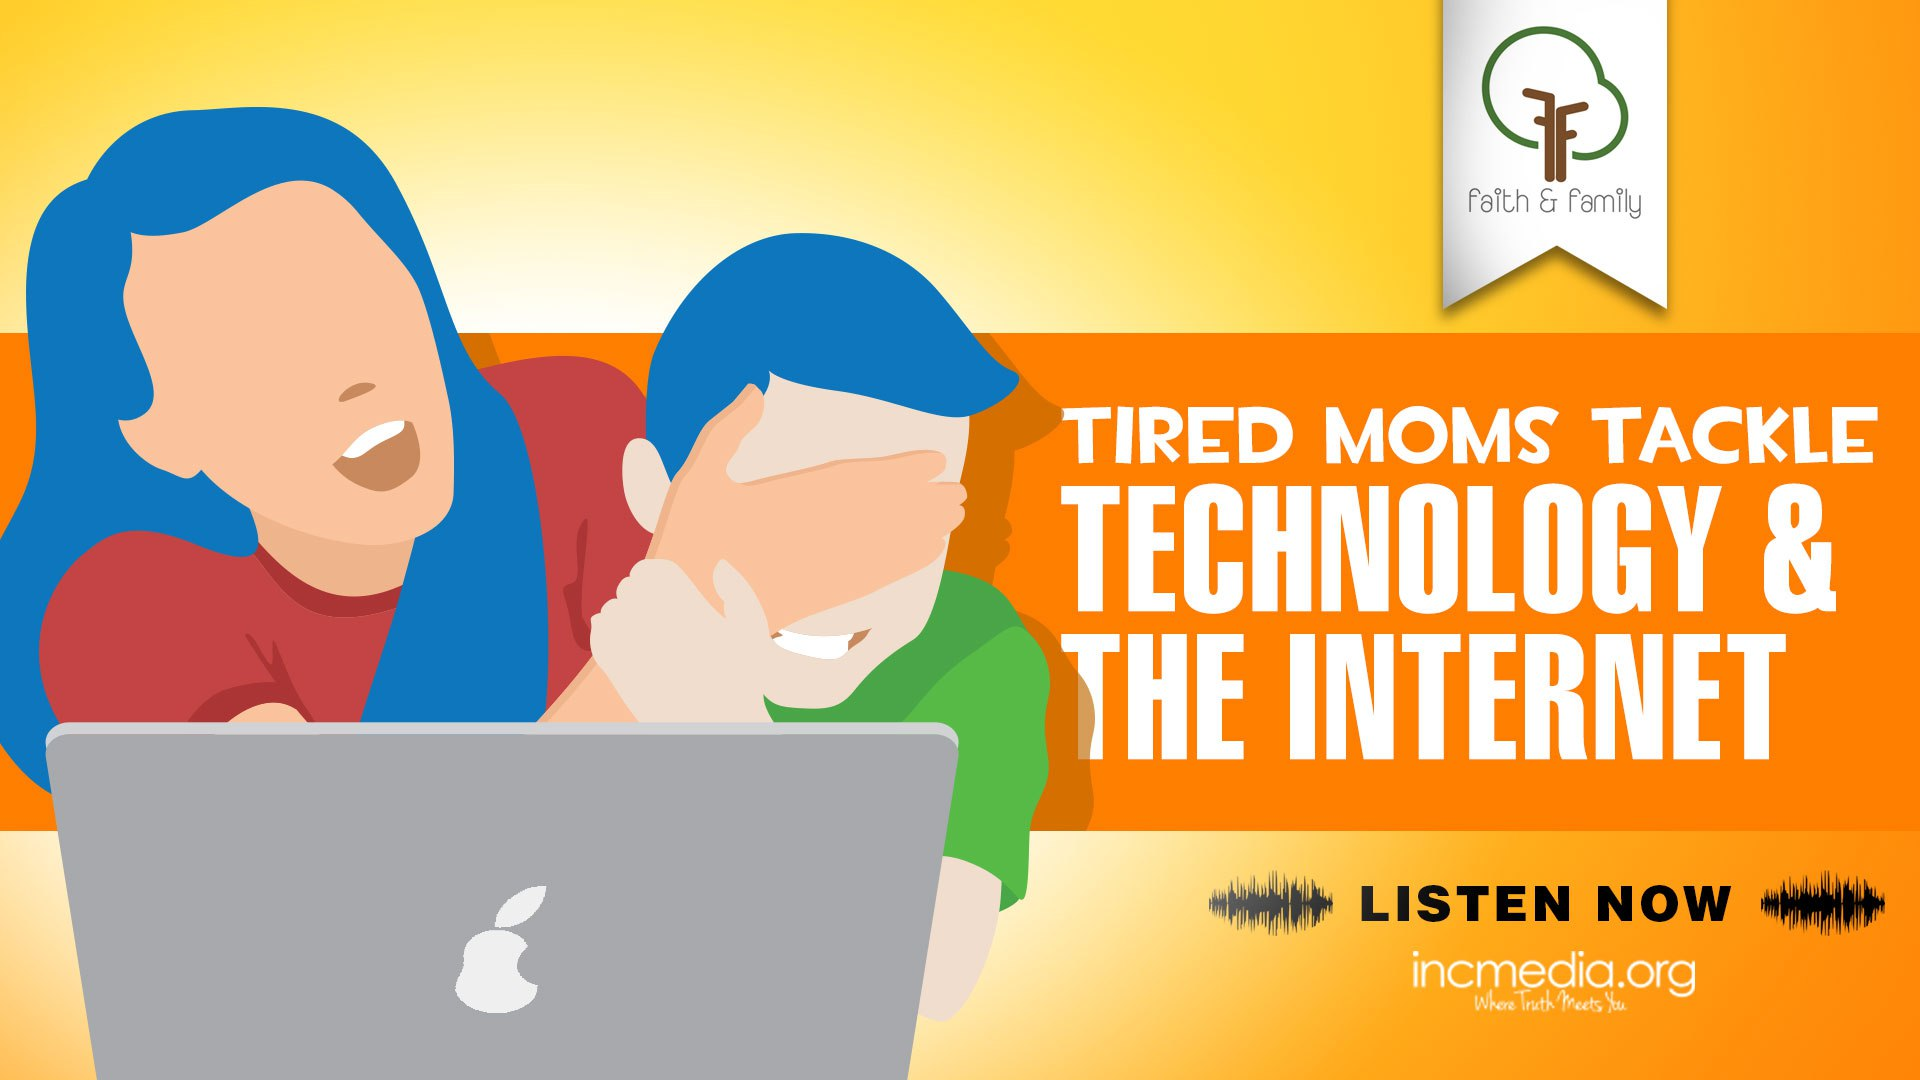 Tired Moms Tackle Technology and the Internet